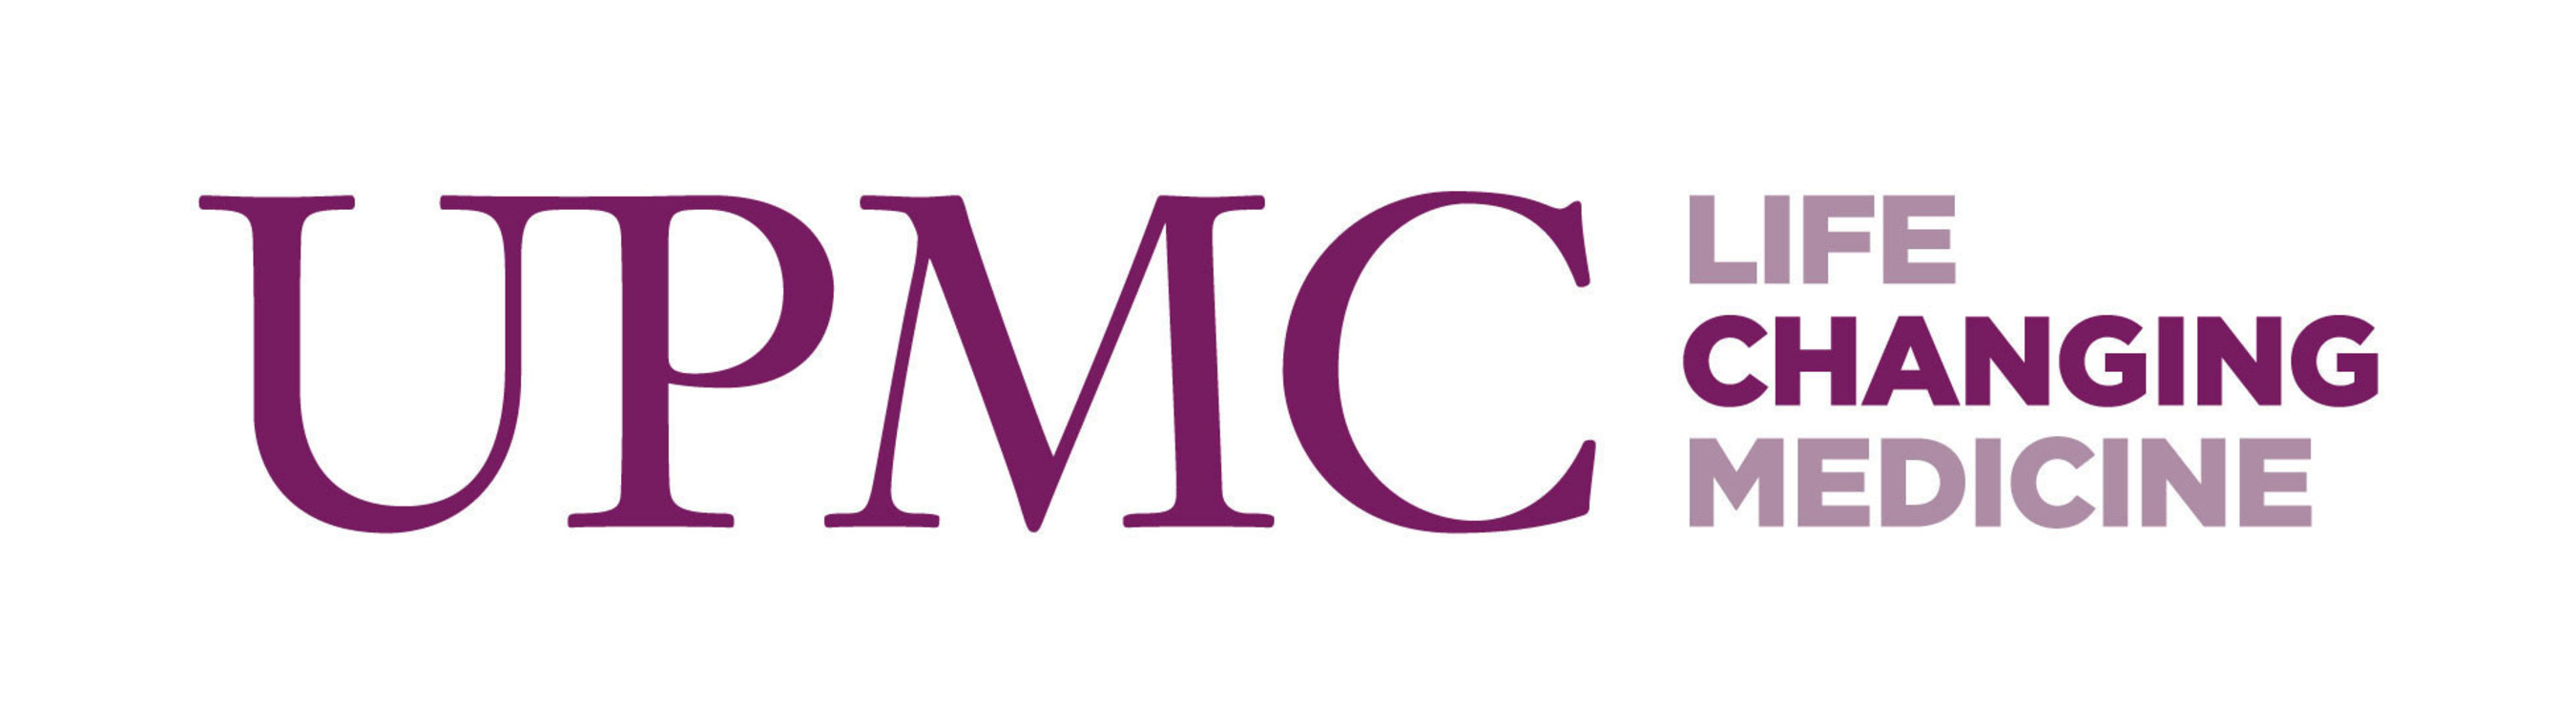 UPMC And Health Catalyst Partner To Lower The Cost Of Healthcare